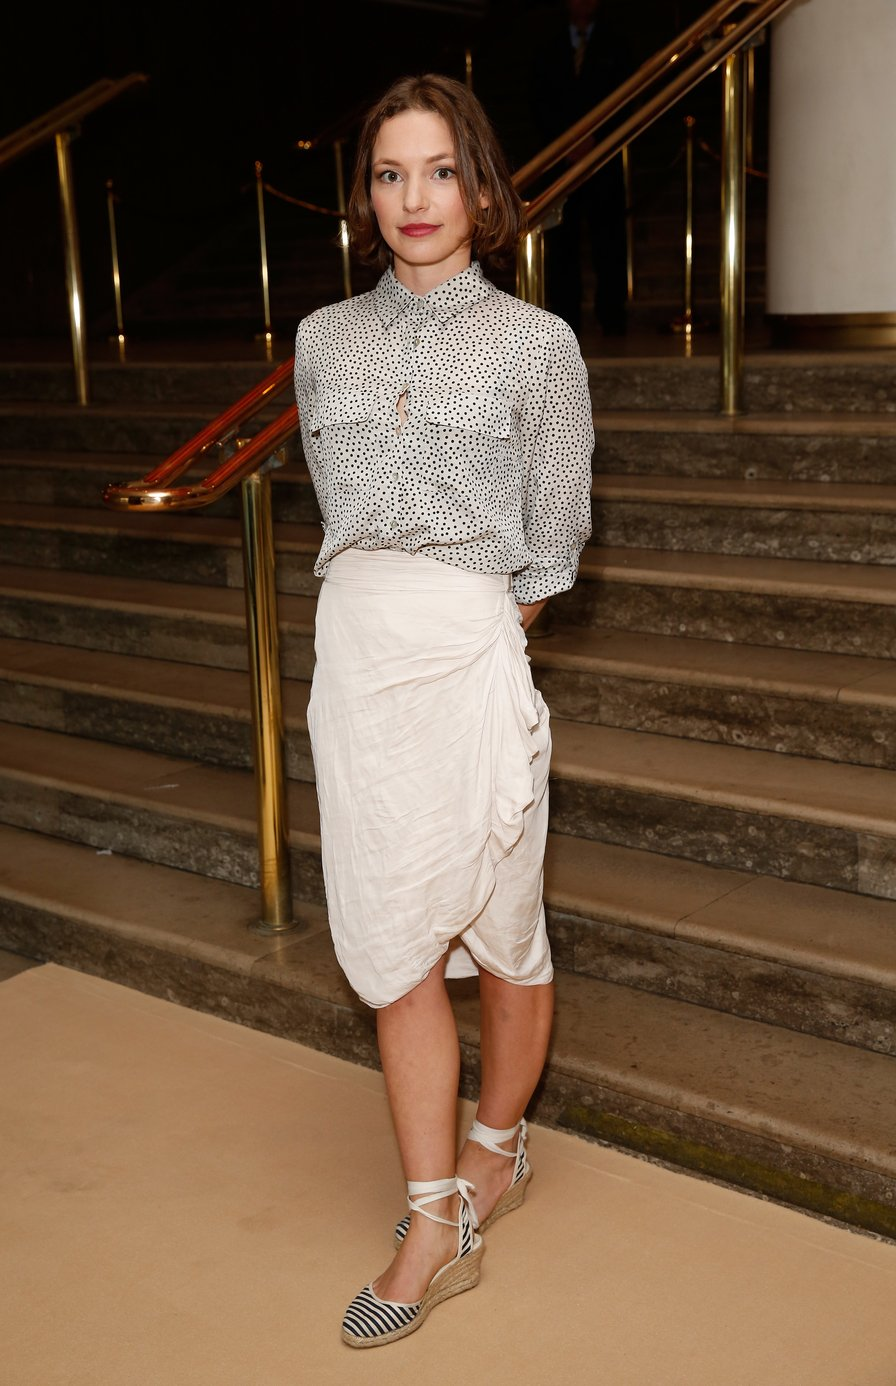 Perdita Weeks arrives to celebrate the 2015 Baileys Women's Prize for Fiction at London's Royal Festival Hall on Wednesday 3 June 2015 in London, England | Photo: GettyImages